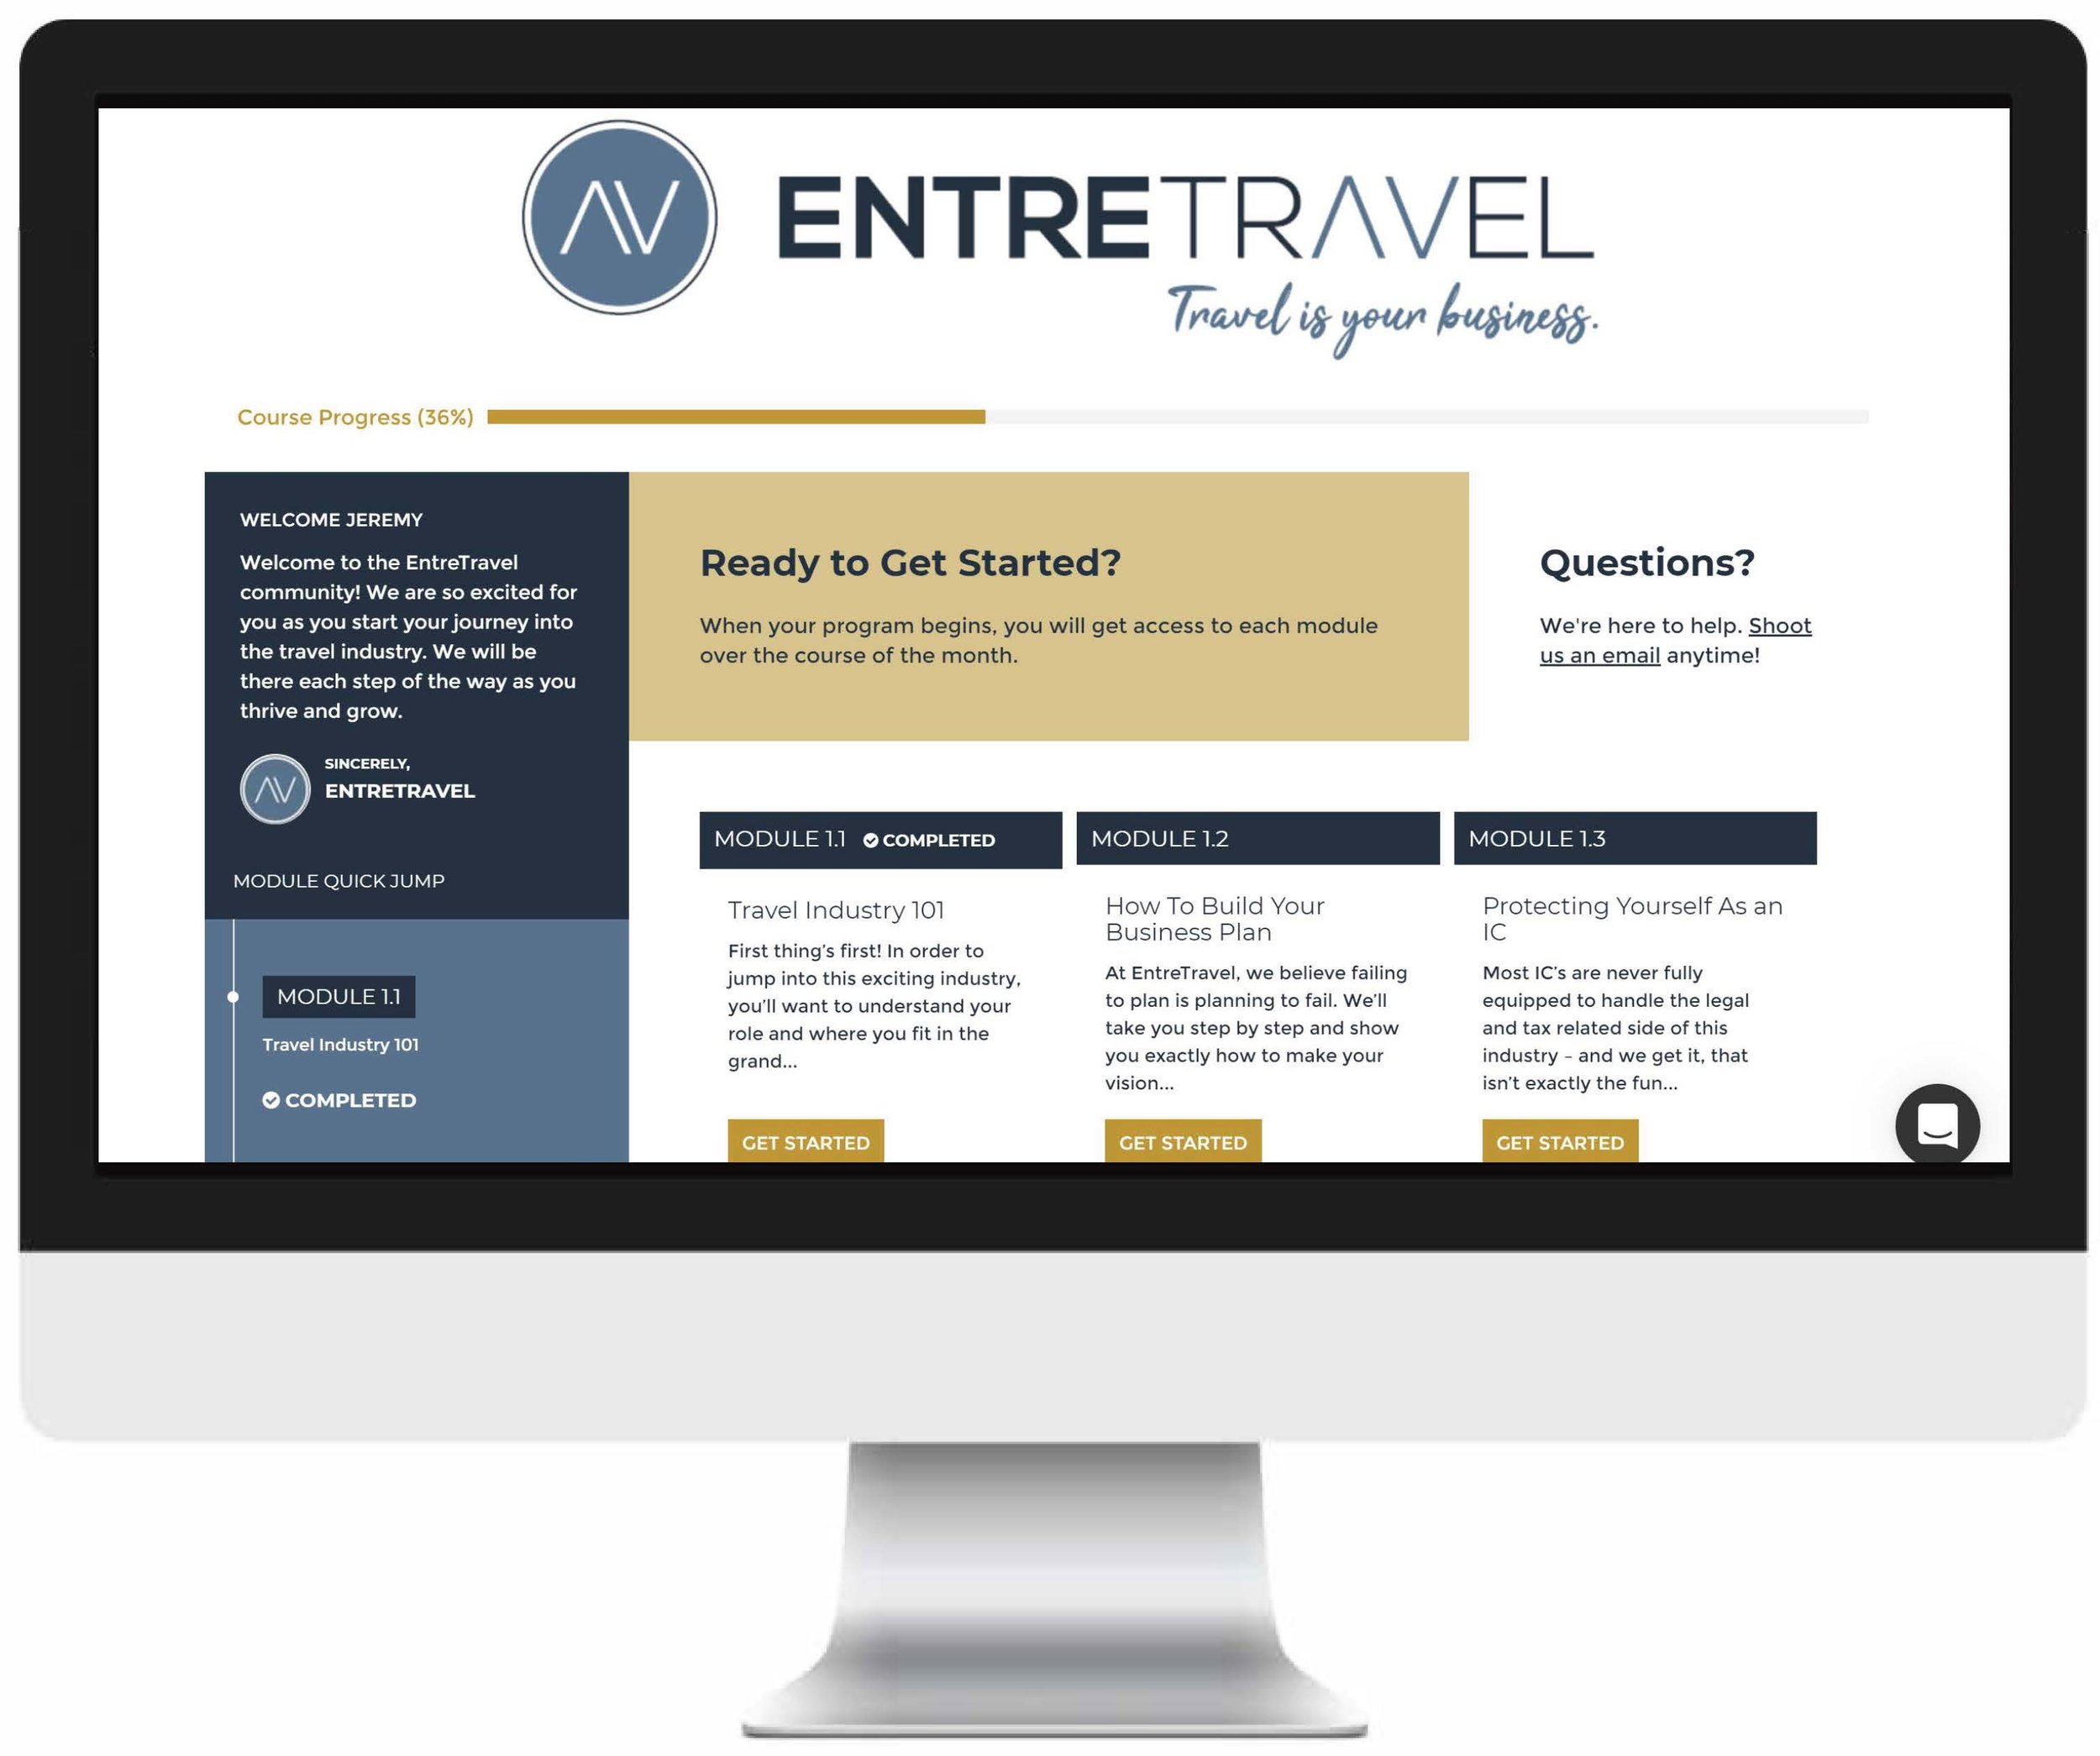 Your Curriculum - Over four weeks, this online course will take you step by step from concept to design to execution when it comes to being a successful travel entrepreneur. You'll walk away prepared to see great success and generate a growing income from your career as a travel advisor.